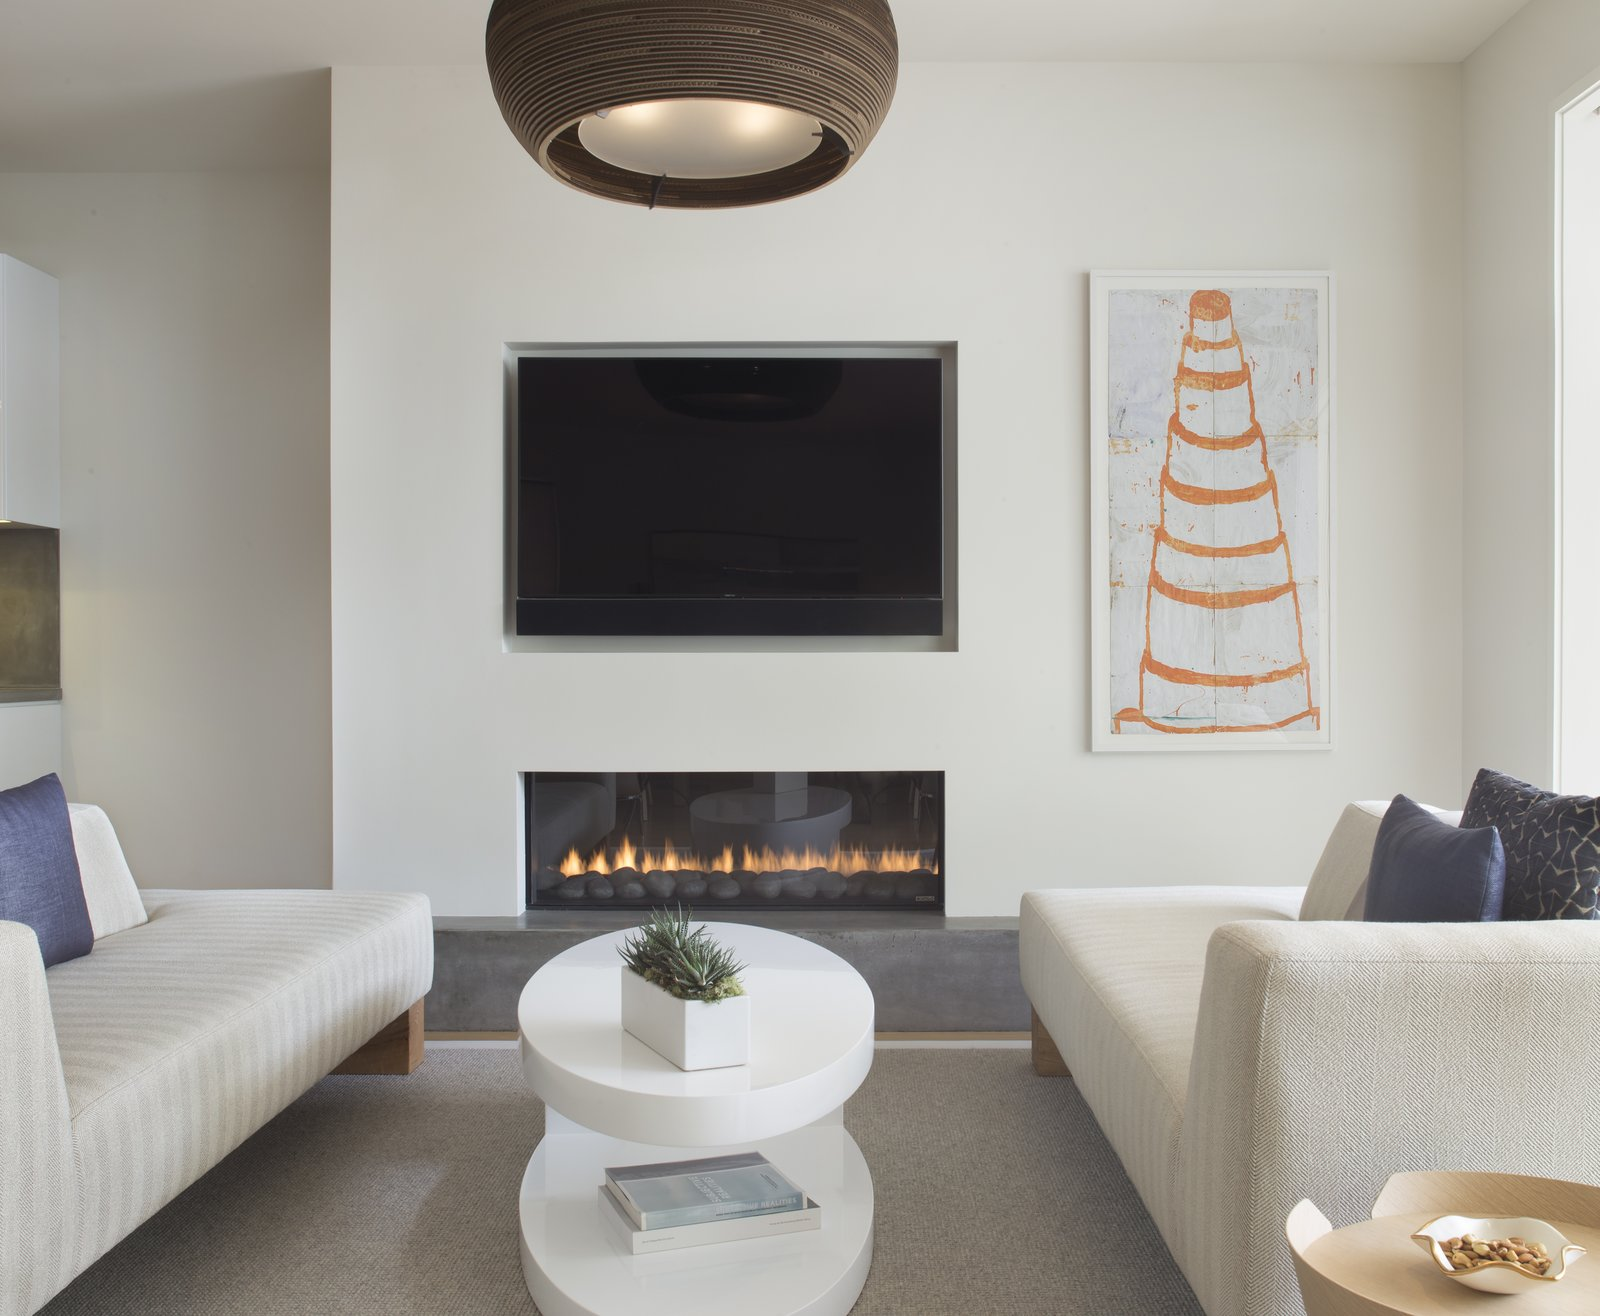 Living Room, Sofa, Gas Burning Fireplace, and Standard Layout Fireplace  Game On by rowland + broughton